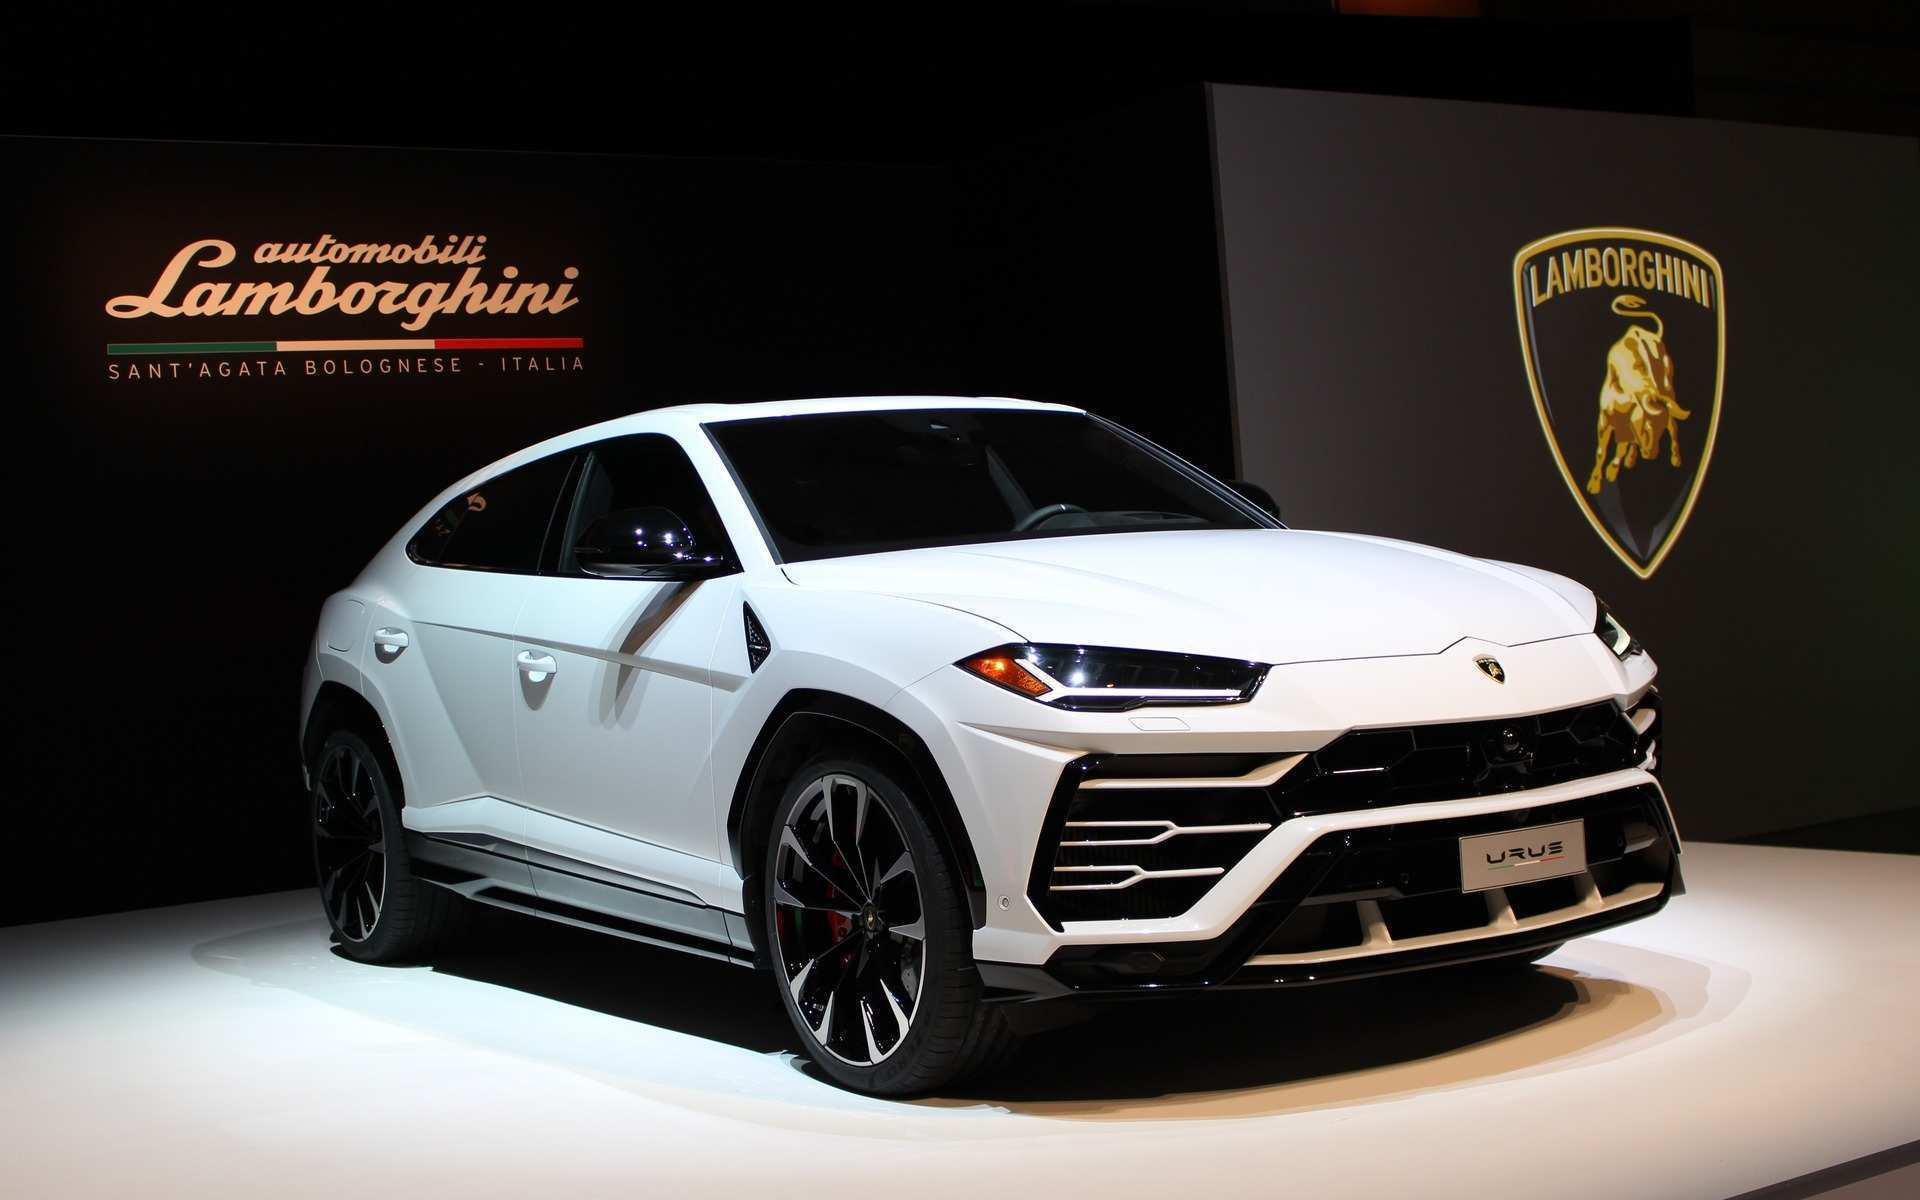 99 The 2019 Lamborghini Suv Price Specs for 2019 Lamborghini Suv Price